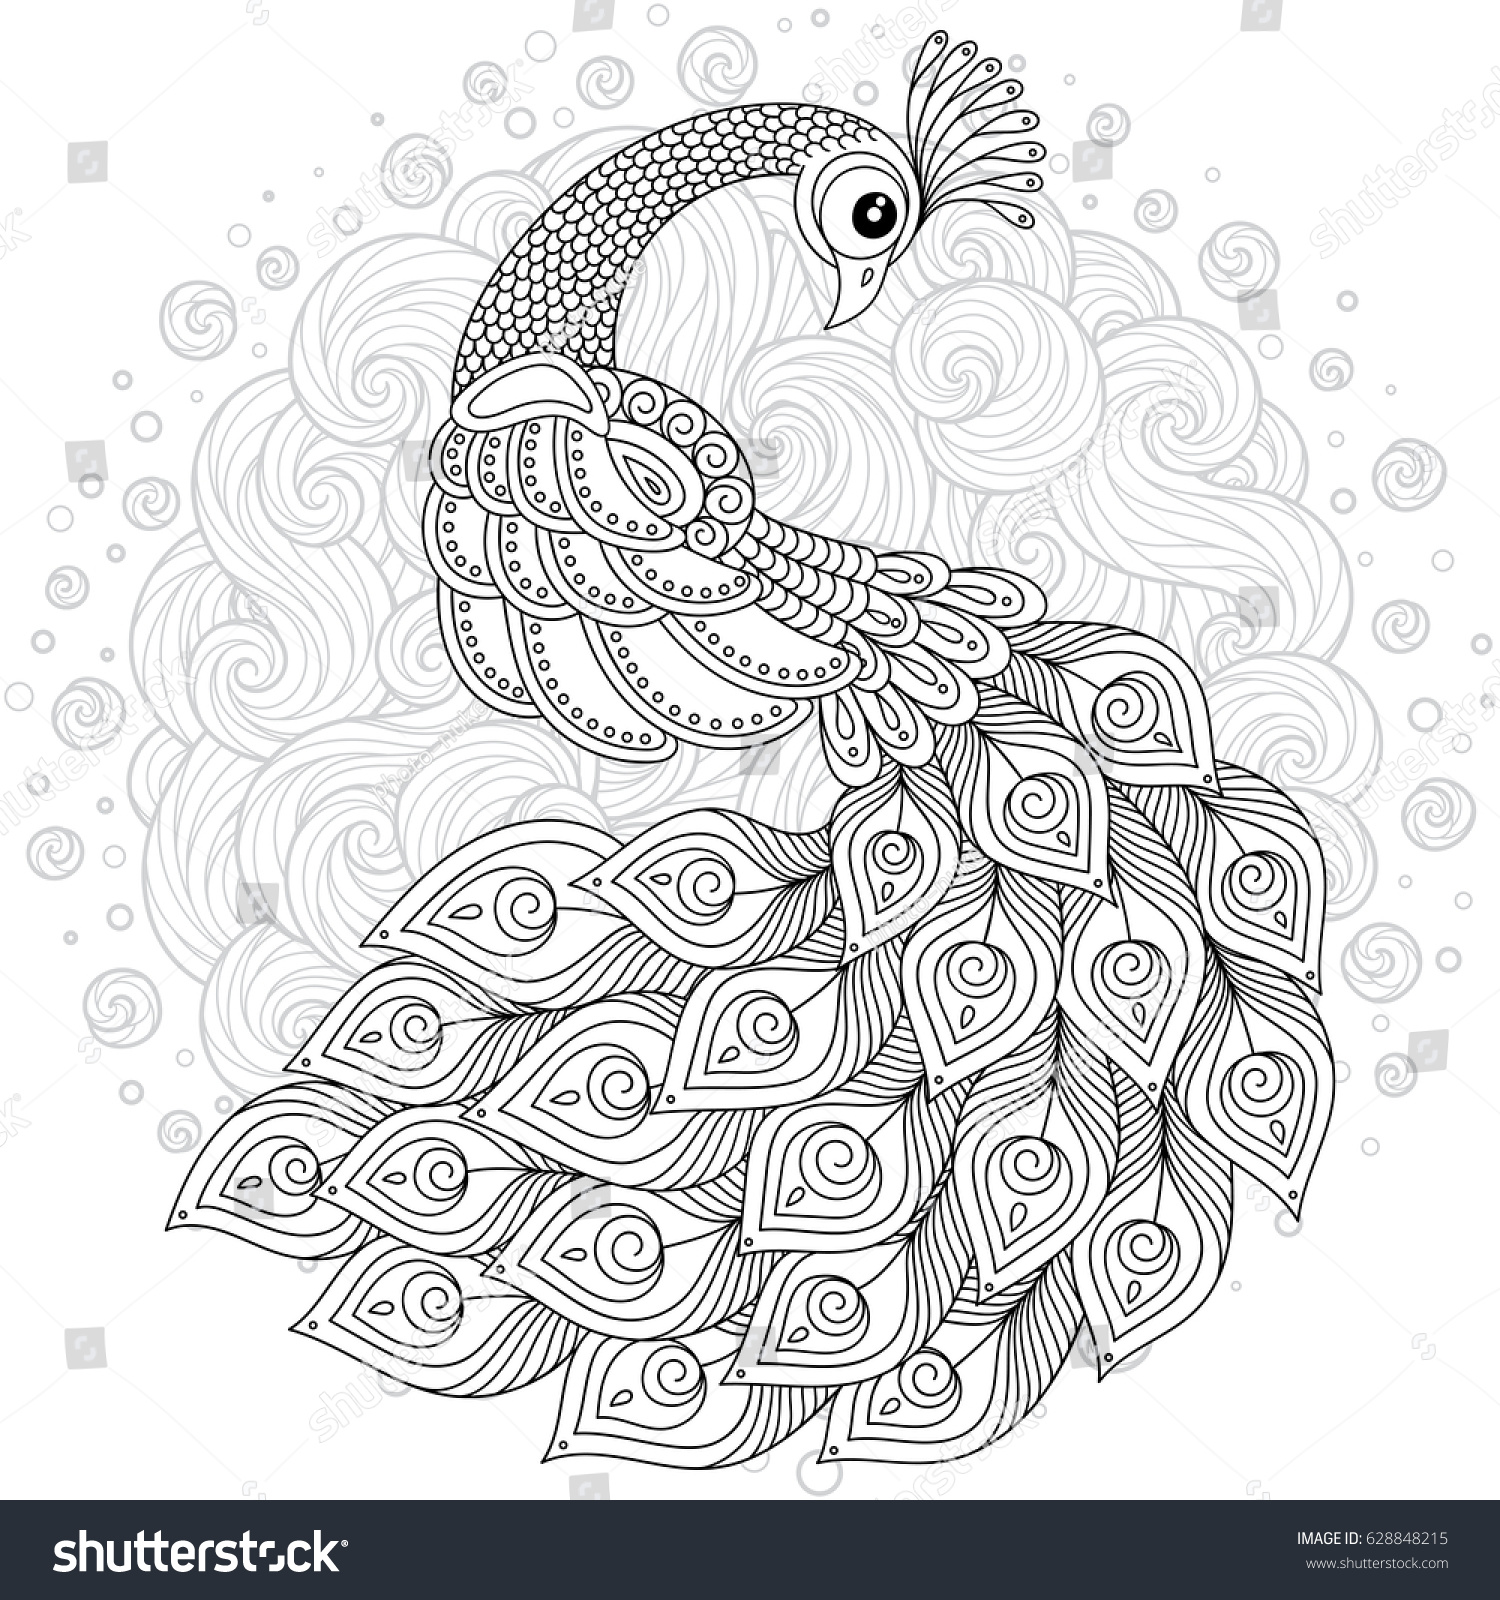 adult coloring pages peacock Hand Drawing Artistic Peacock Adult Coloring Stock Vector (Royalty  adult coloring pages peacock